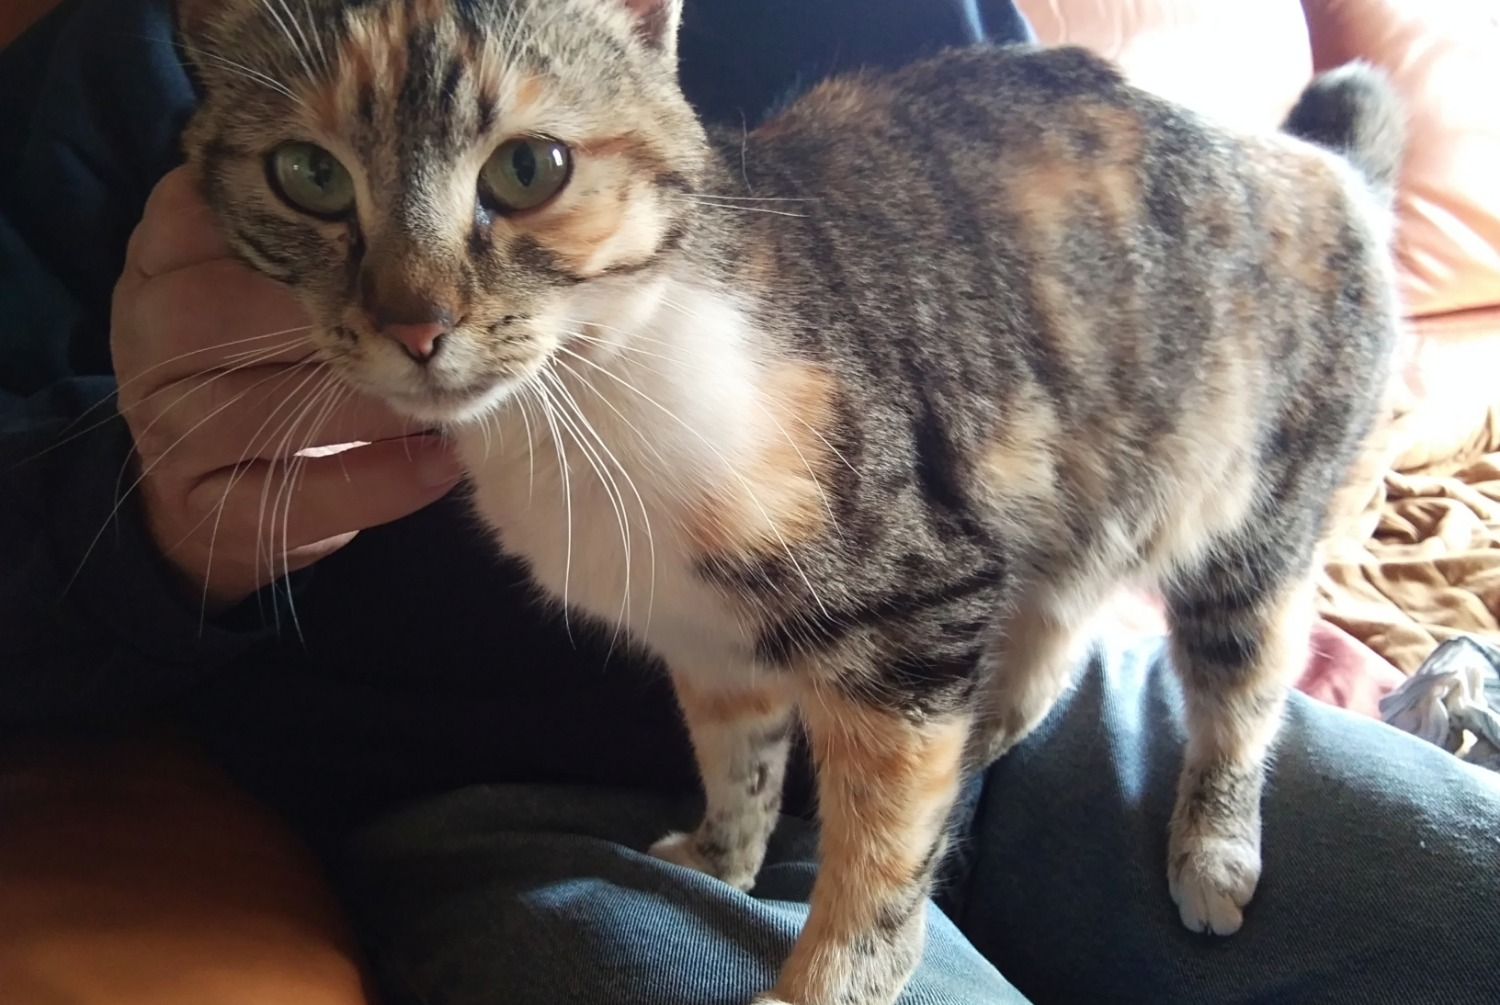 Discovery alert Cat Female , Between 9 and 12 months Loire-Authion France